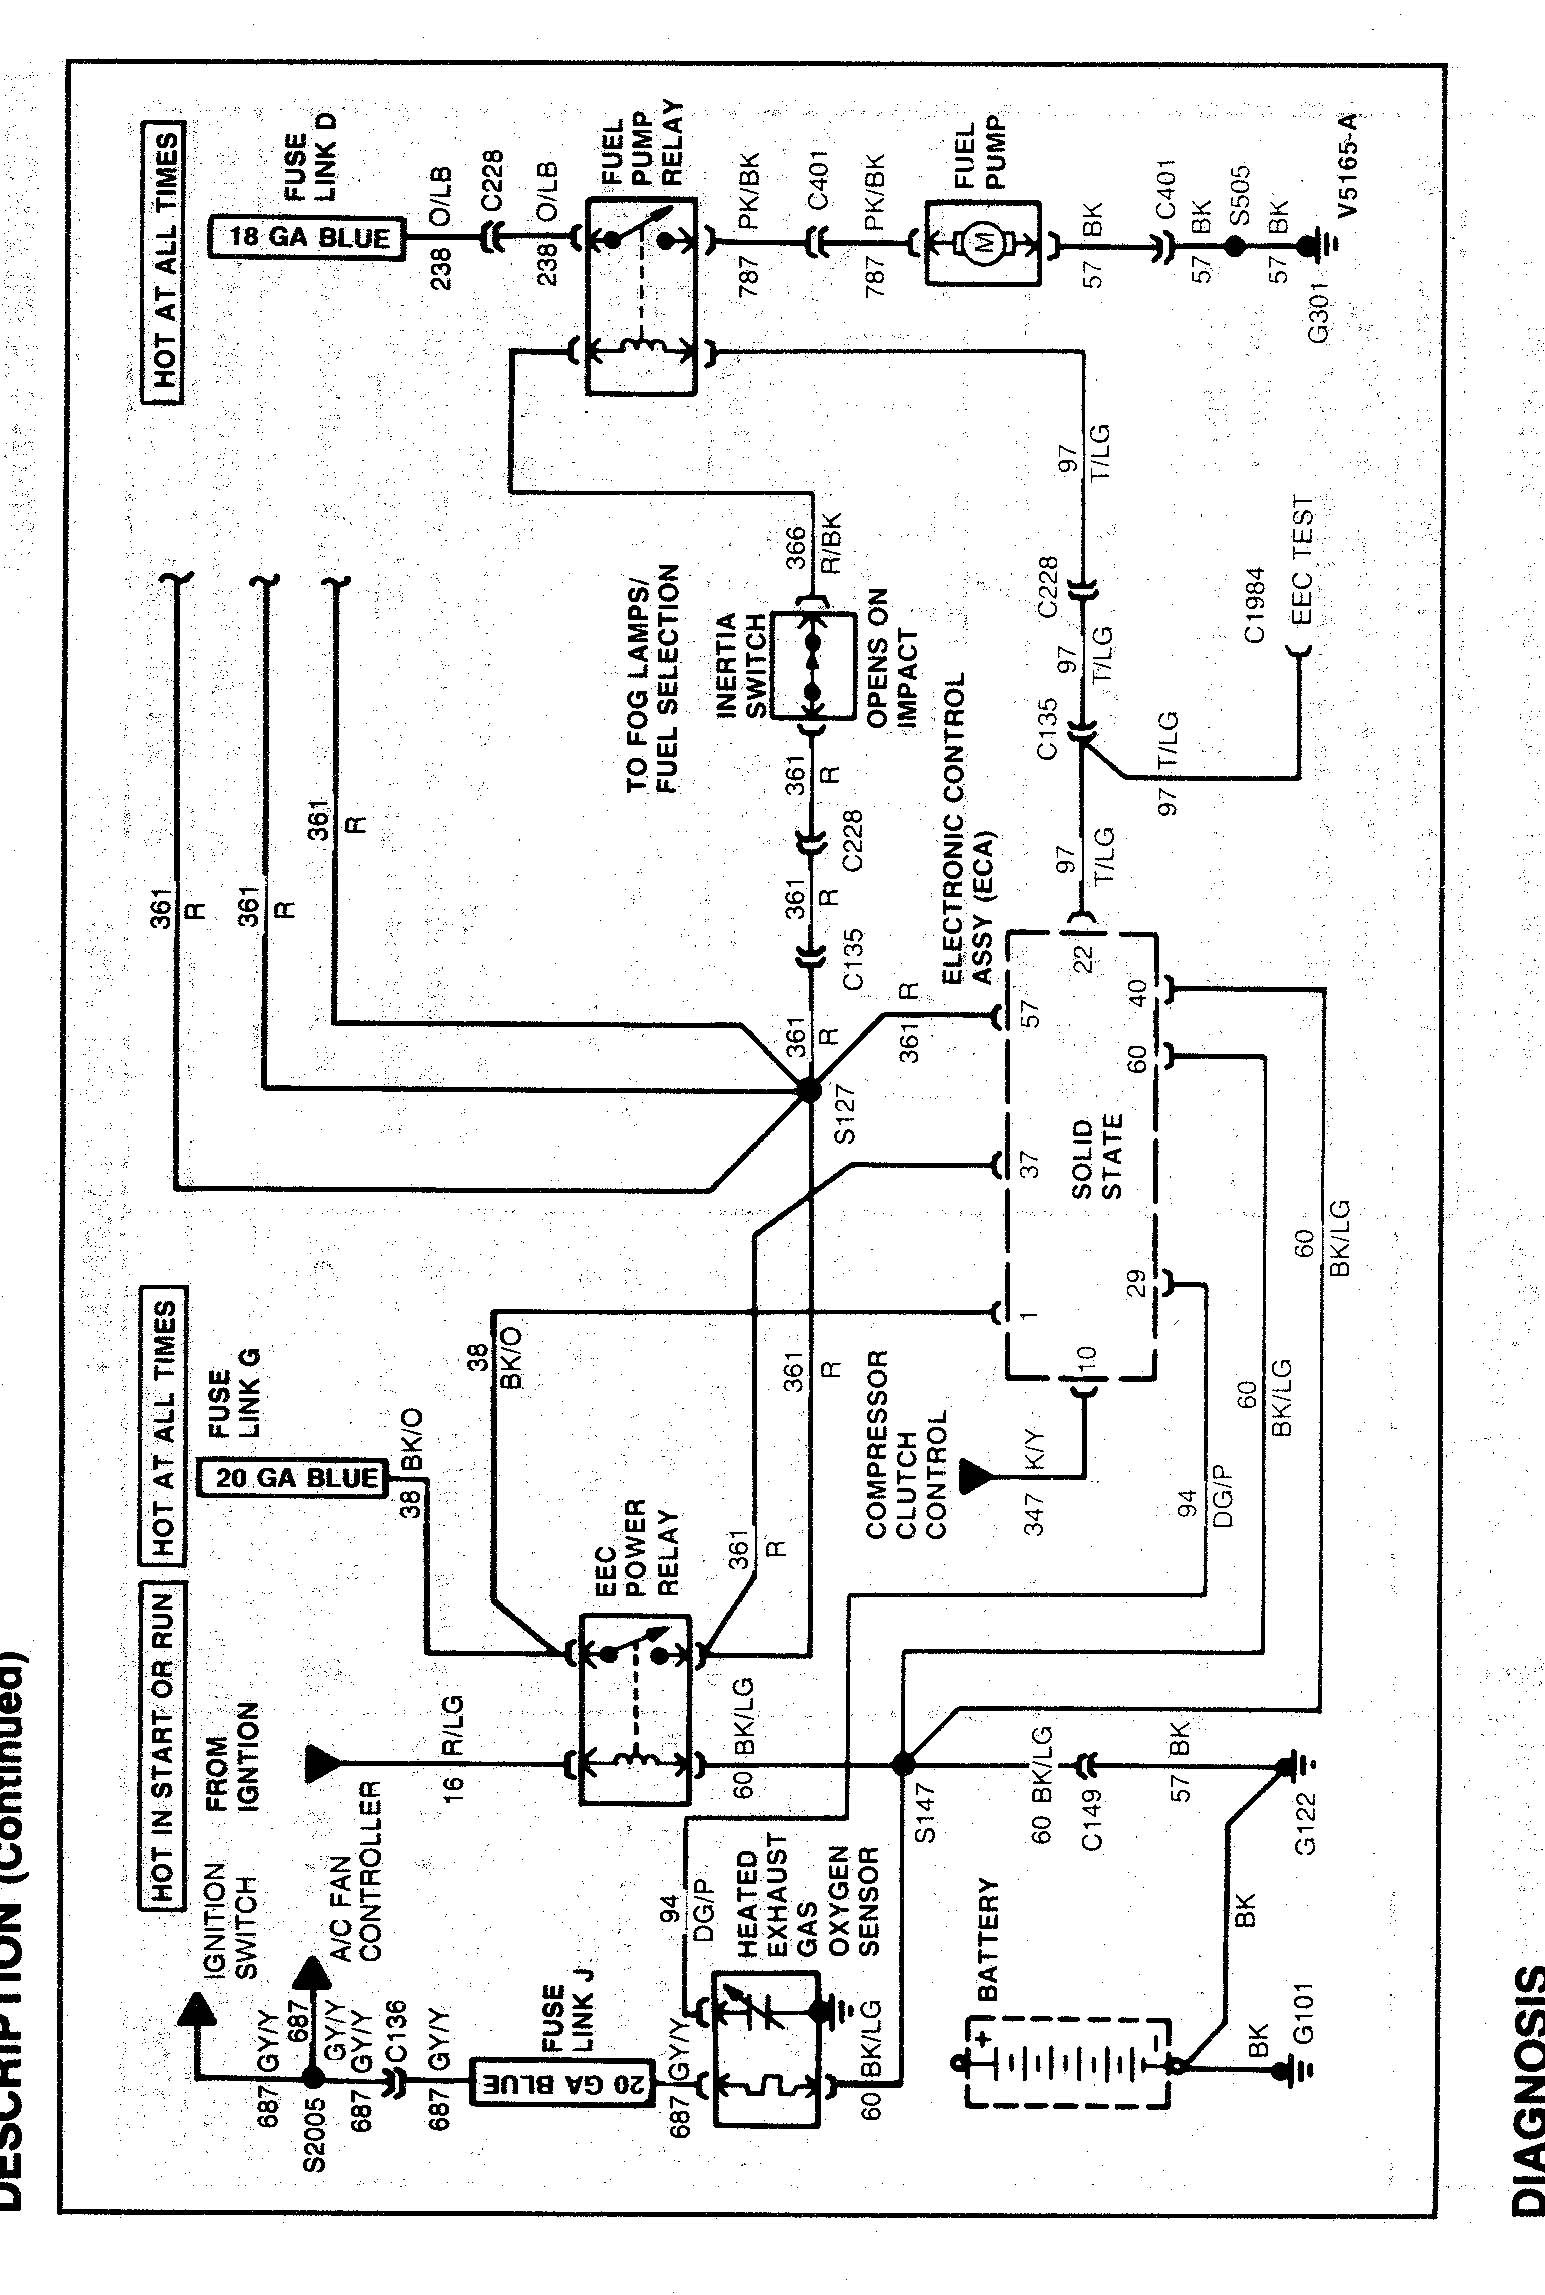 100 [ mustang horn wiring diagram ] 63 impala fuse box on 63 on speaker wiring diagram 95 mustang gt 94 Ford Explorer Radio Wiring Diagram 1992 Ford Mustang Body Wiring